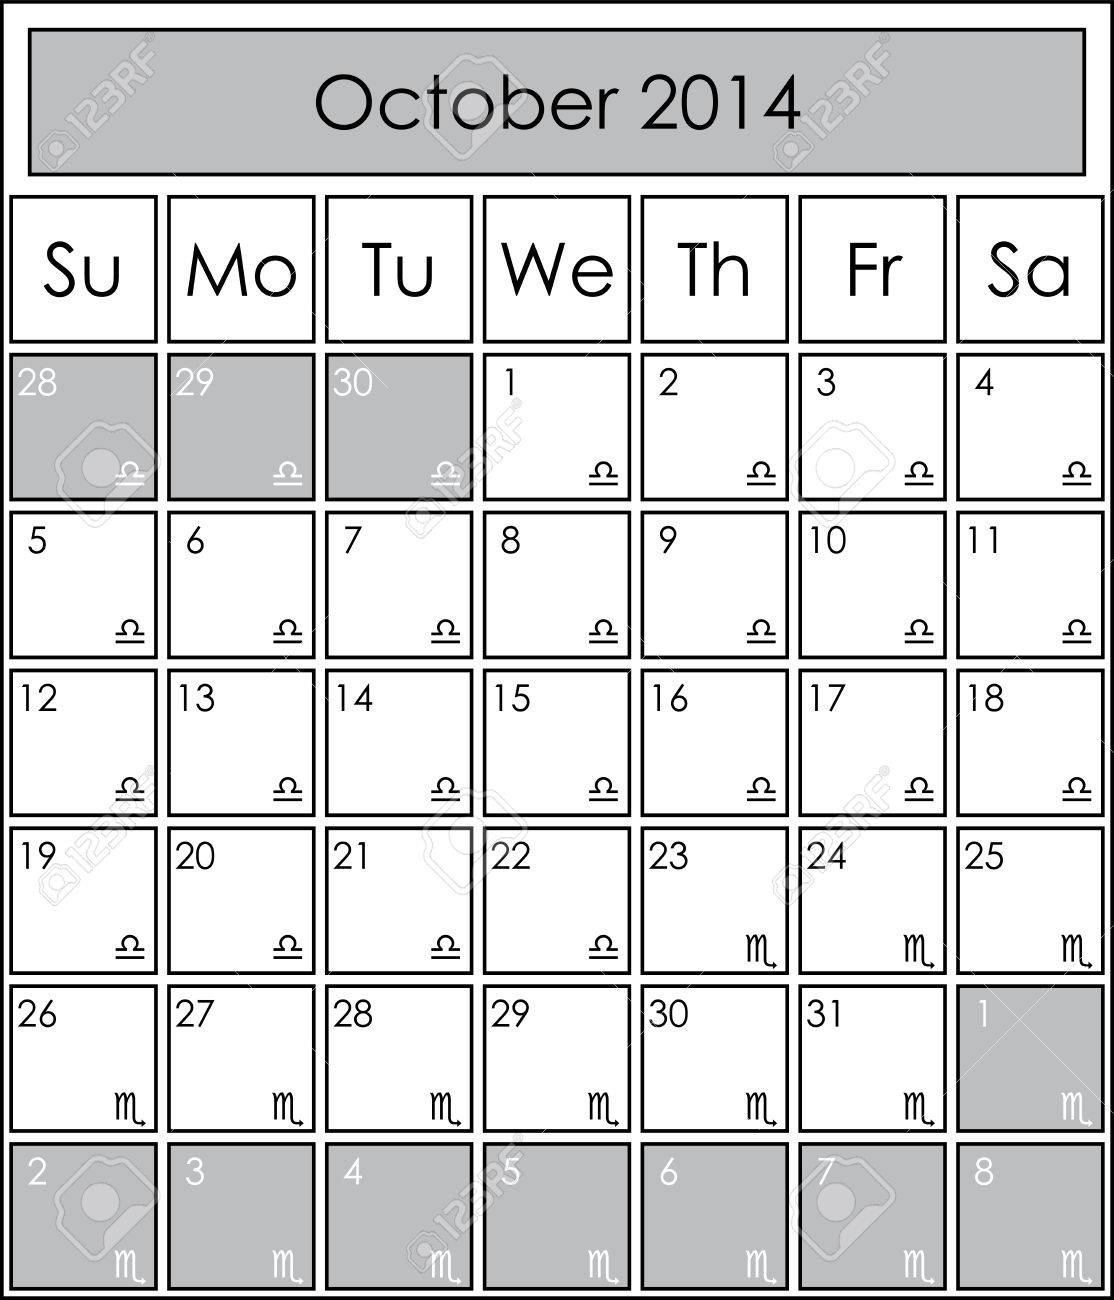 2014 Calendar Monthly, October, With Zodiac Signs